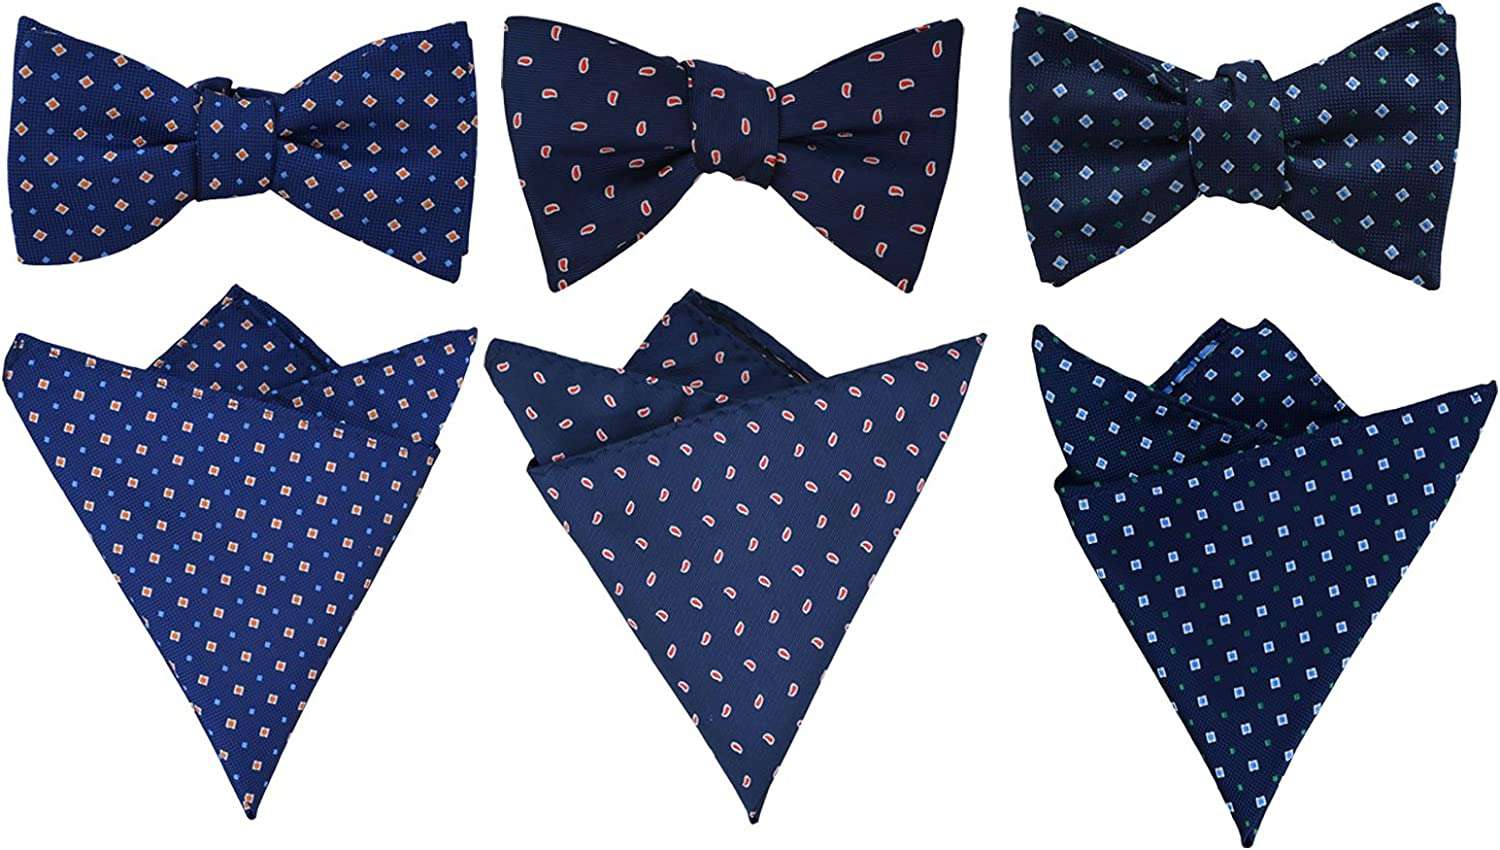 SYAYA 3pcs mens jacquard woven self bow ties for men and pocket square set Wedding or Tuxedo MLD09